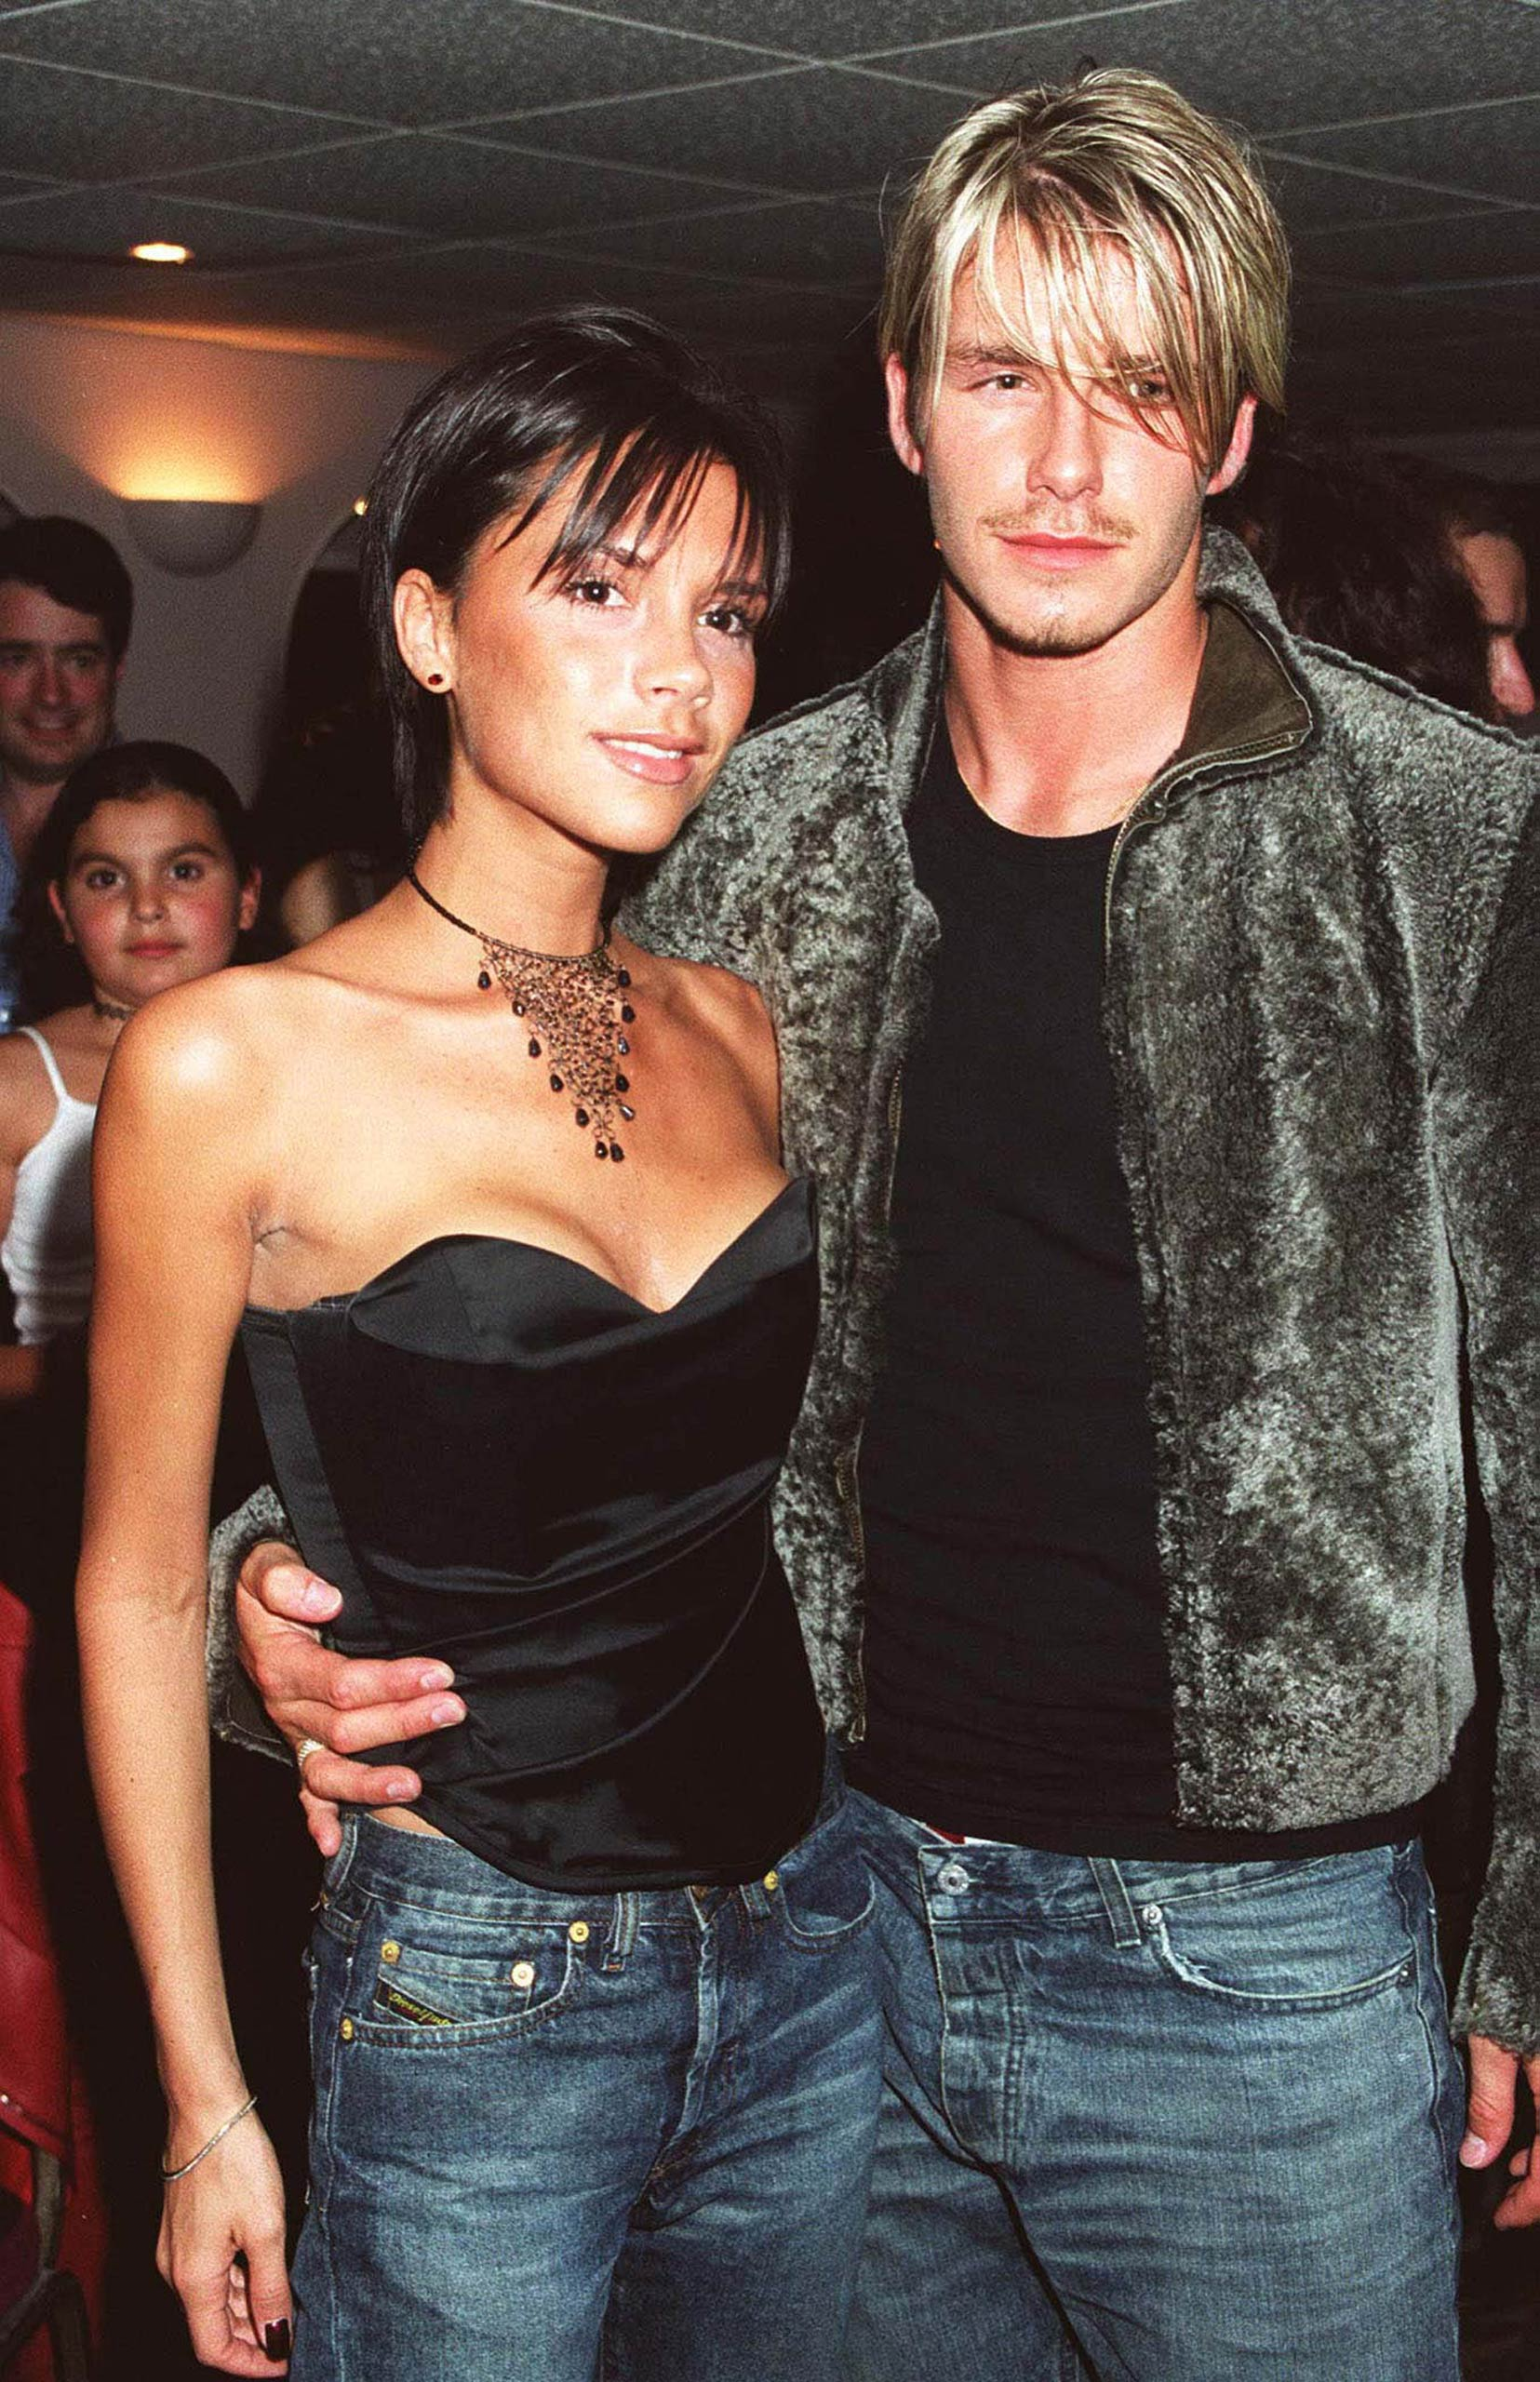 Victoria Adams and David Beckham are seen backstage after a Whitney Houston concert at Wembley Arena, London in 1999.